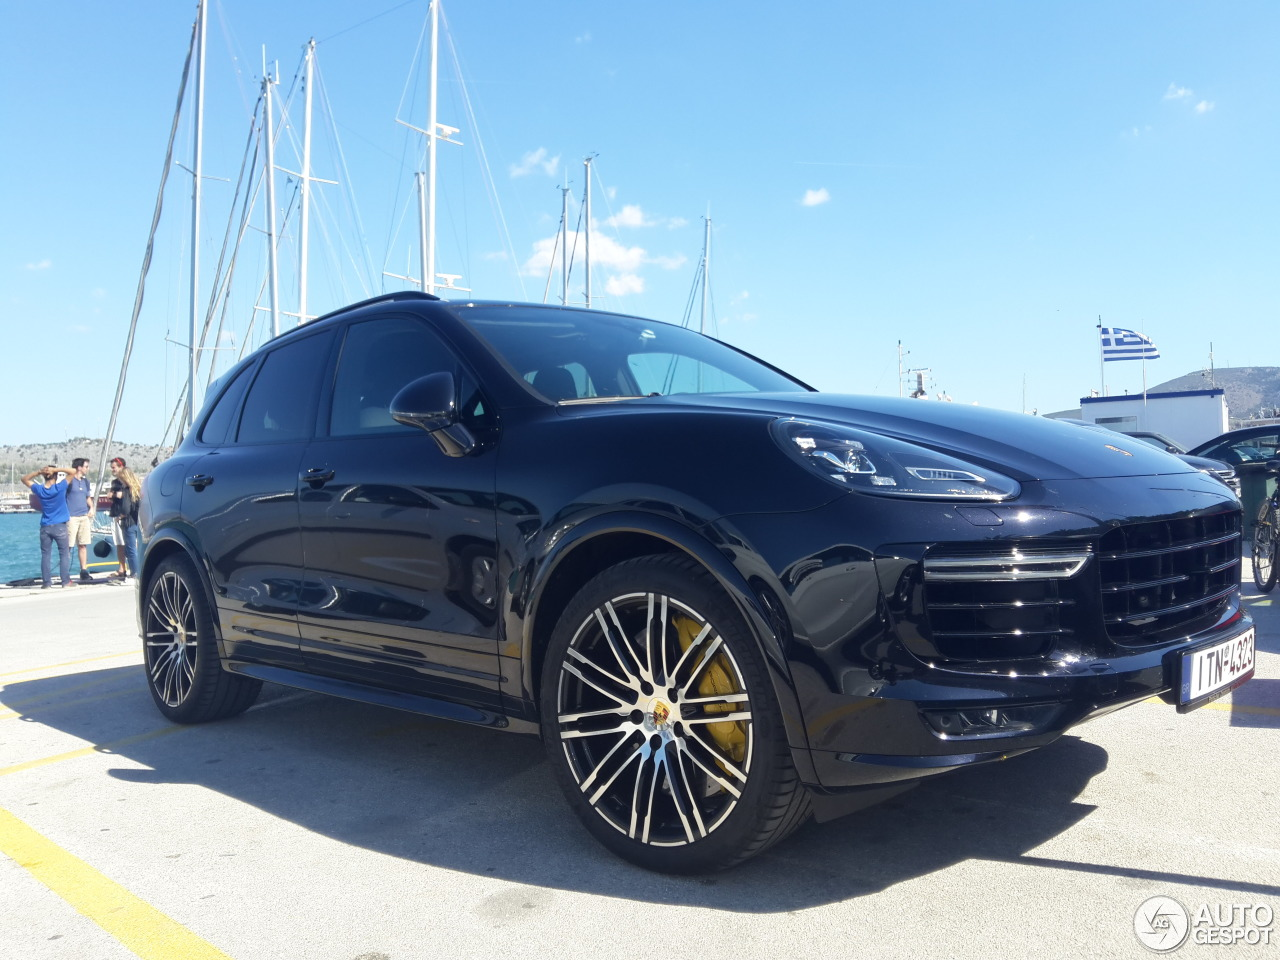 porsche 958 cayenne turbo s mkii 15 october 2017 autogespot. Black Bedroom Furniture Sets. Home Design Ideas